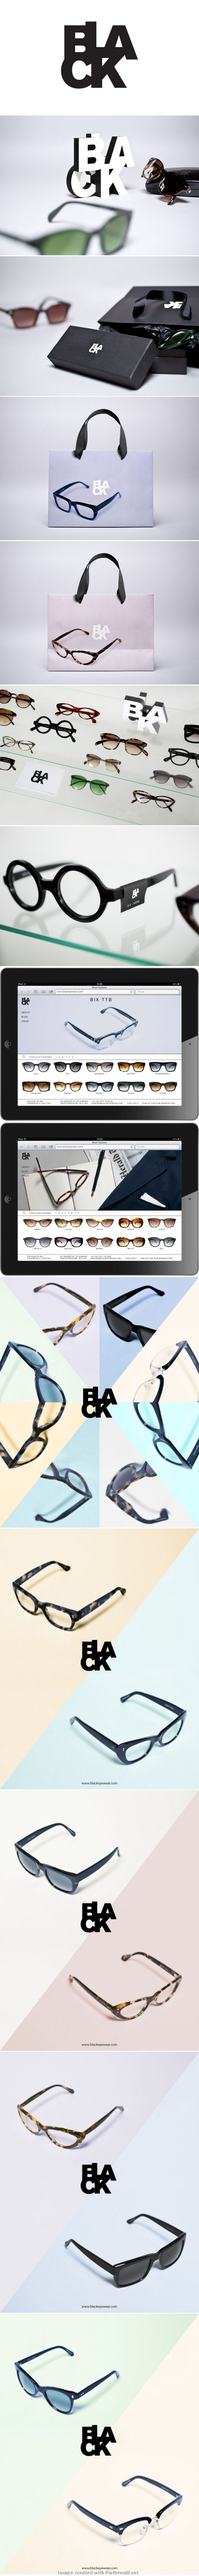 Bibliotheque for optician and life-long jazz enthusiast, Robert Roope. Clever glasses identity packaging branding PD